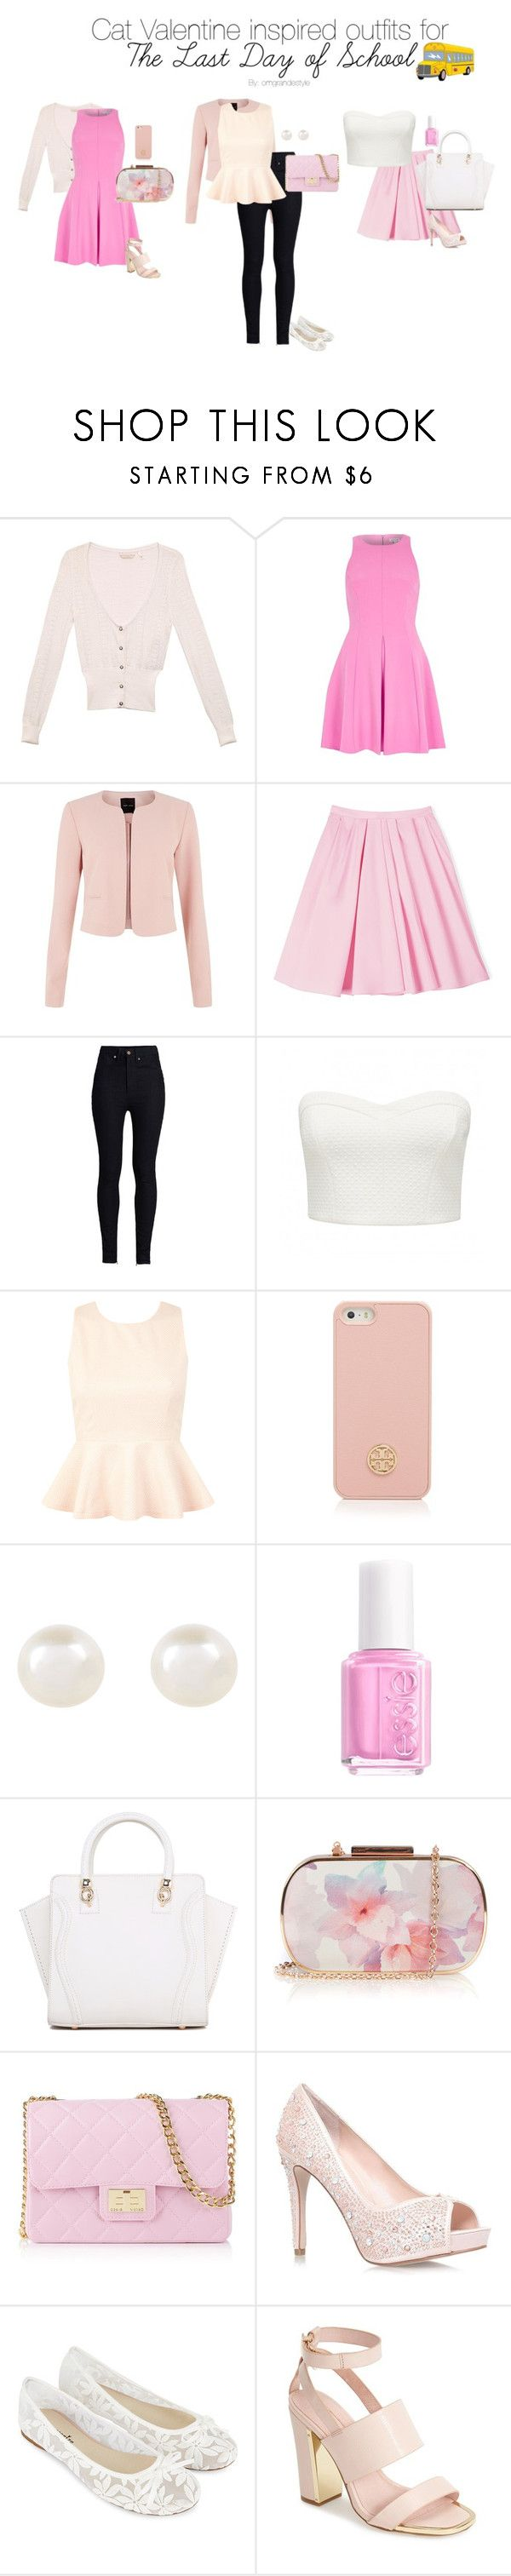 """Cat Valentine inspired outfits for The Last Day of School"" by dashinggrande ❤ liked on Polyvore featuring GUESS, River Island, Carven, Rodarte, Forever New, Miss Selfridge, Tory Burch, Accessorize, Essie and Oasis"